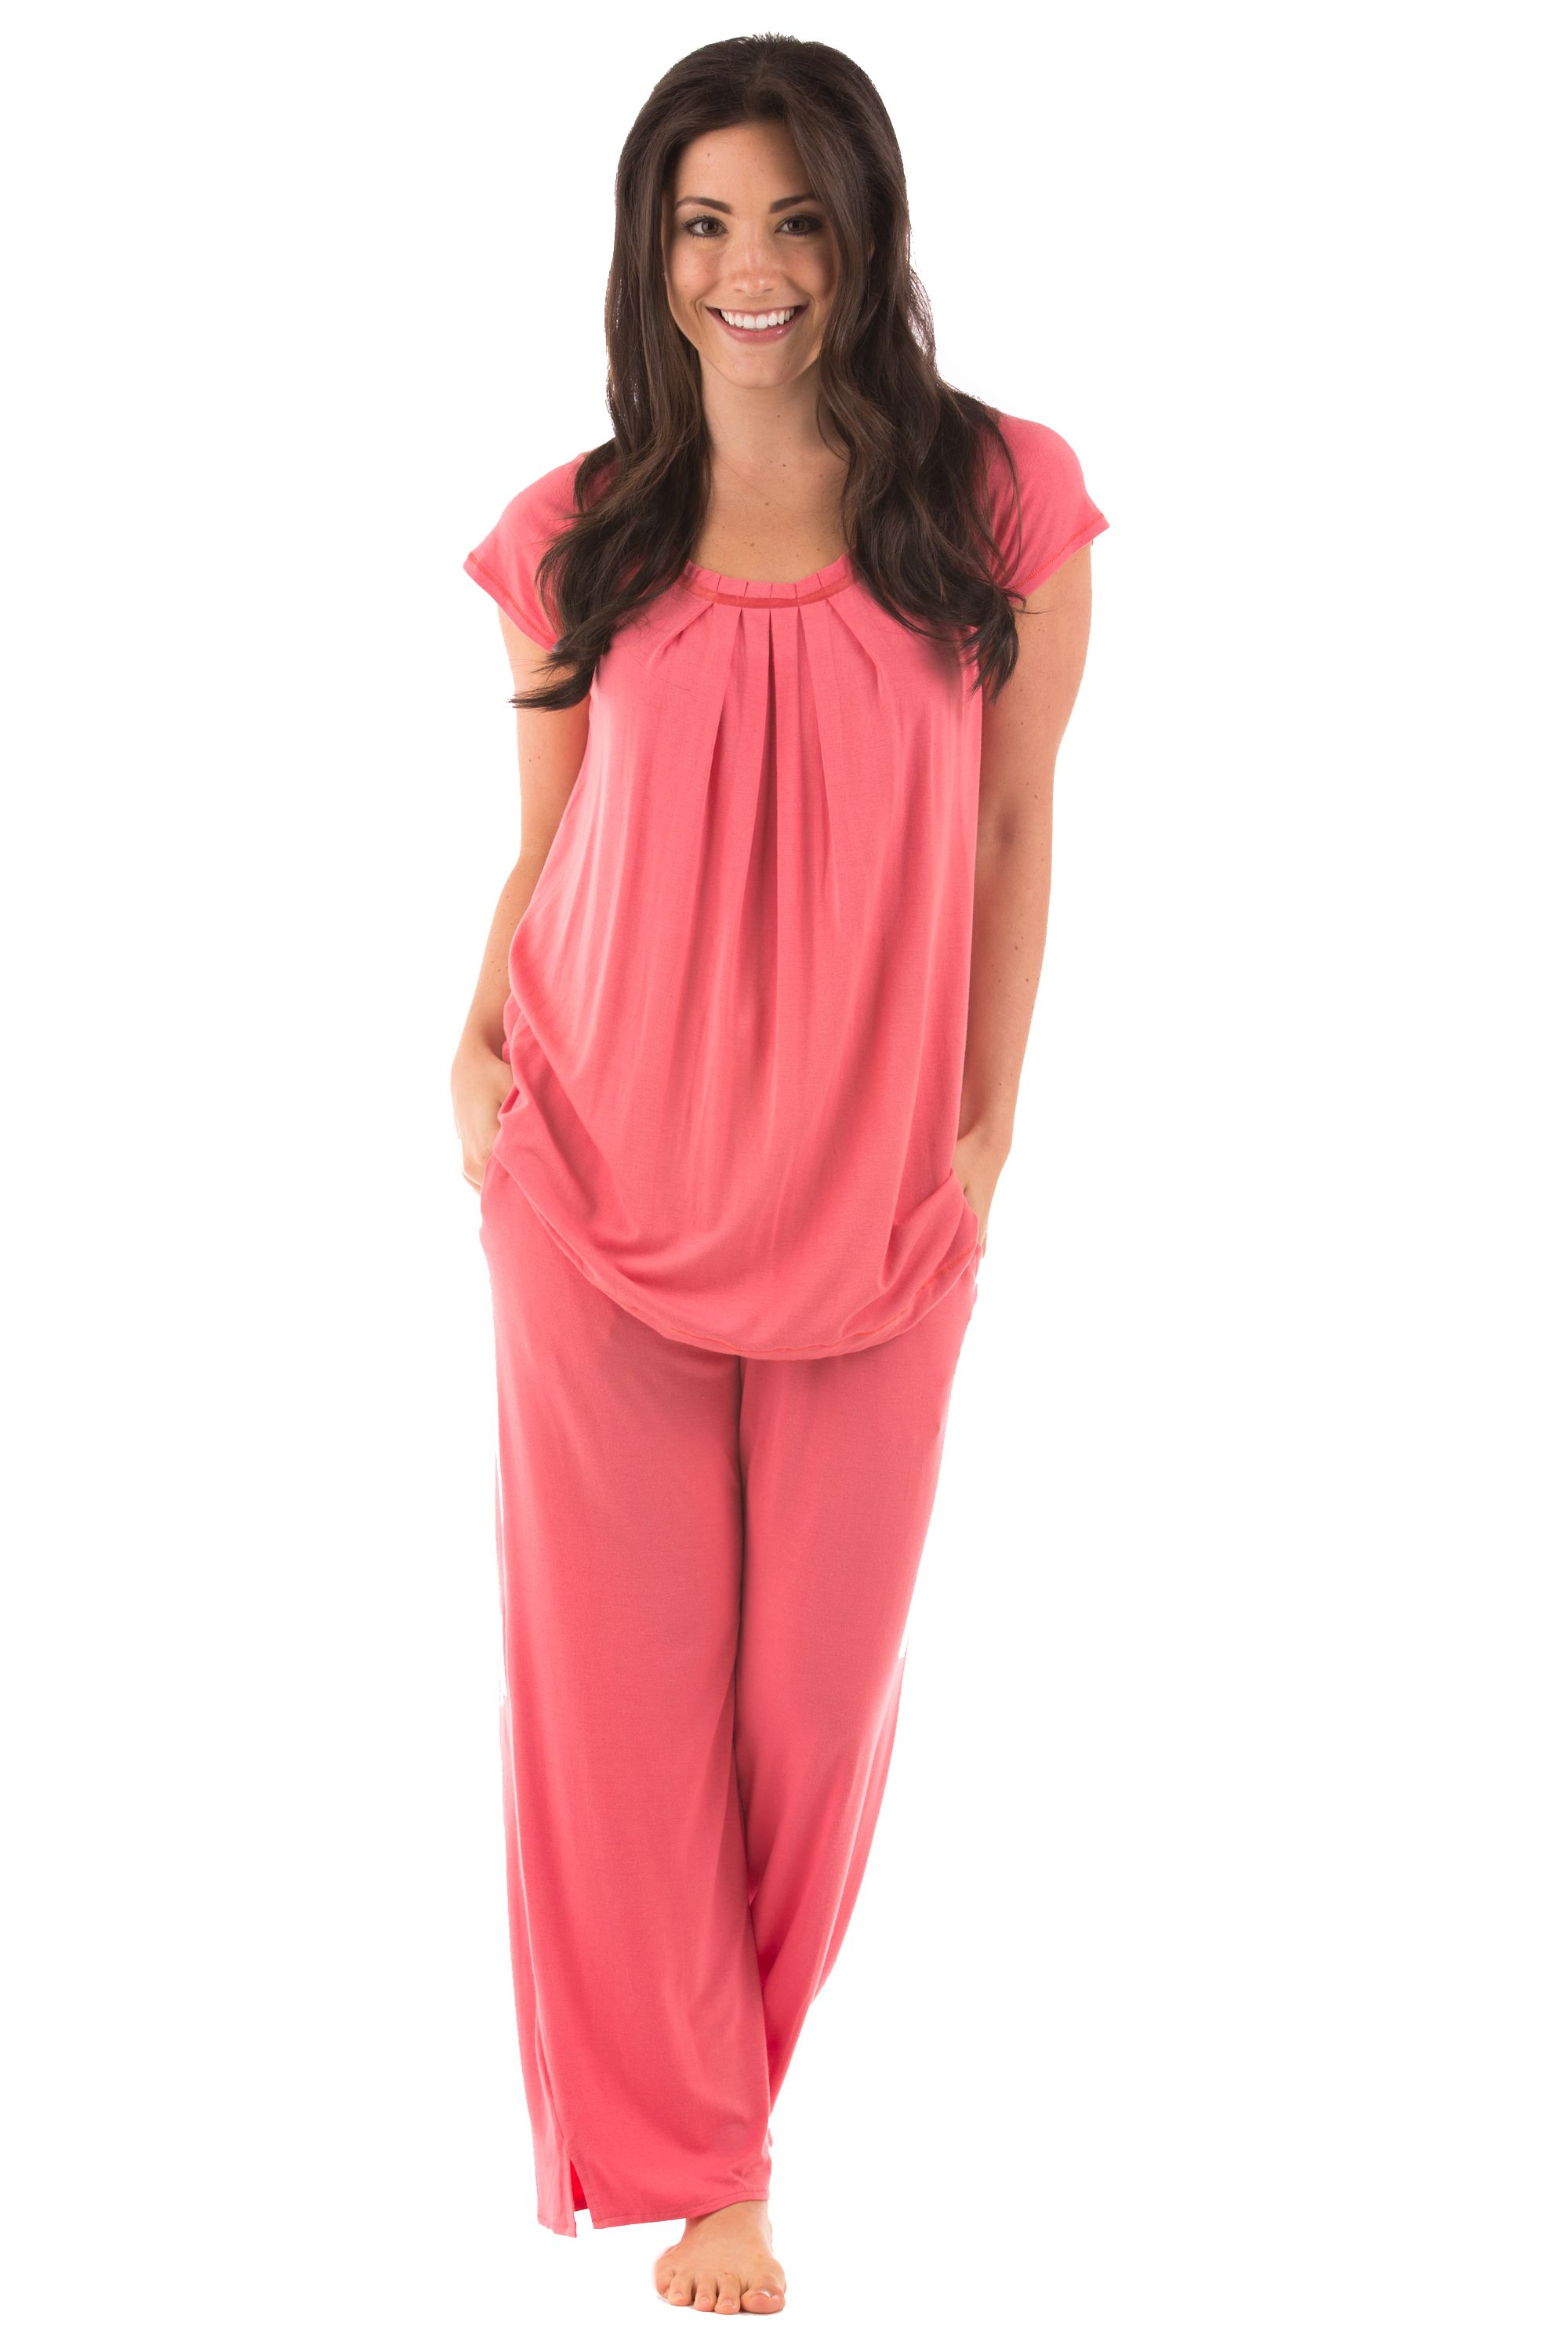 Terexe Bamboo Bliss  Women s Bamboo Pajamas  6ac77fb64